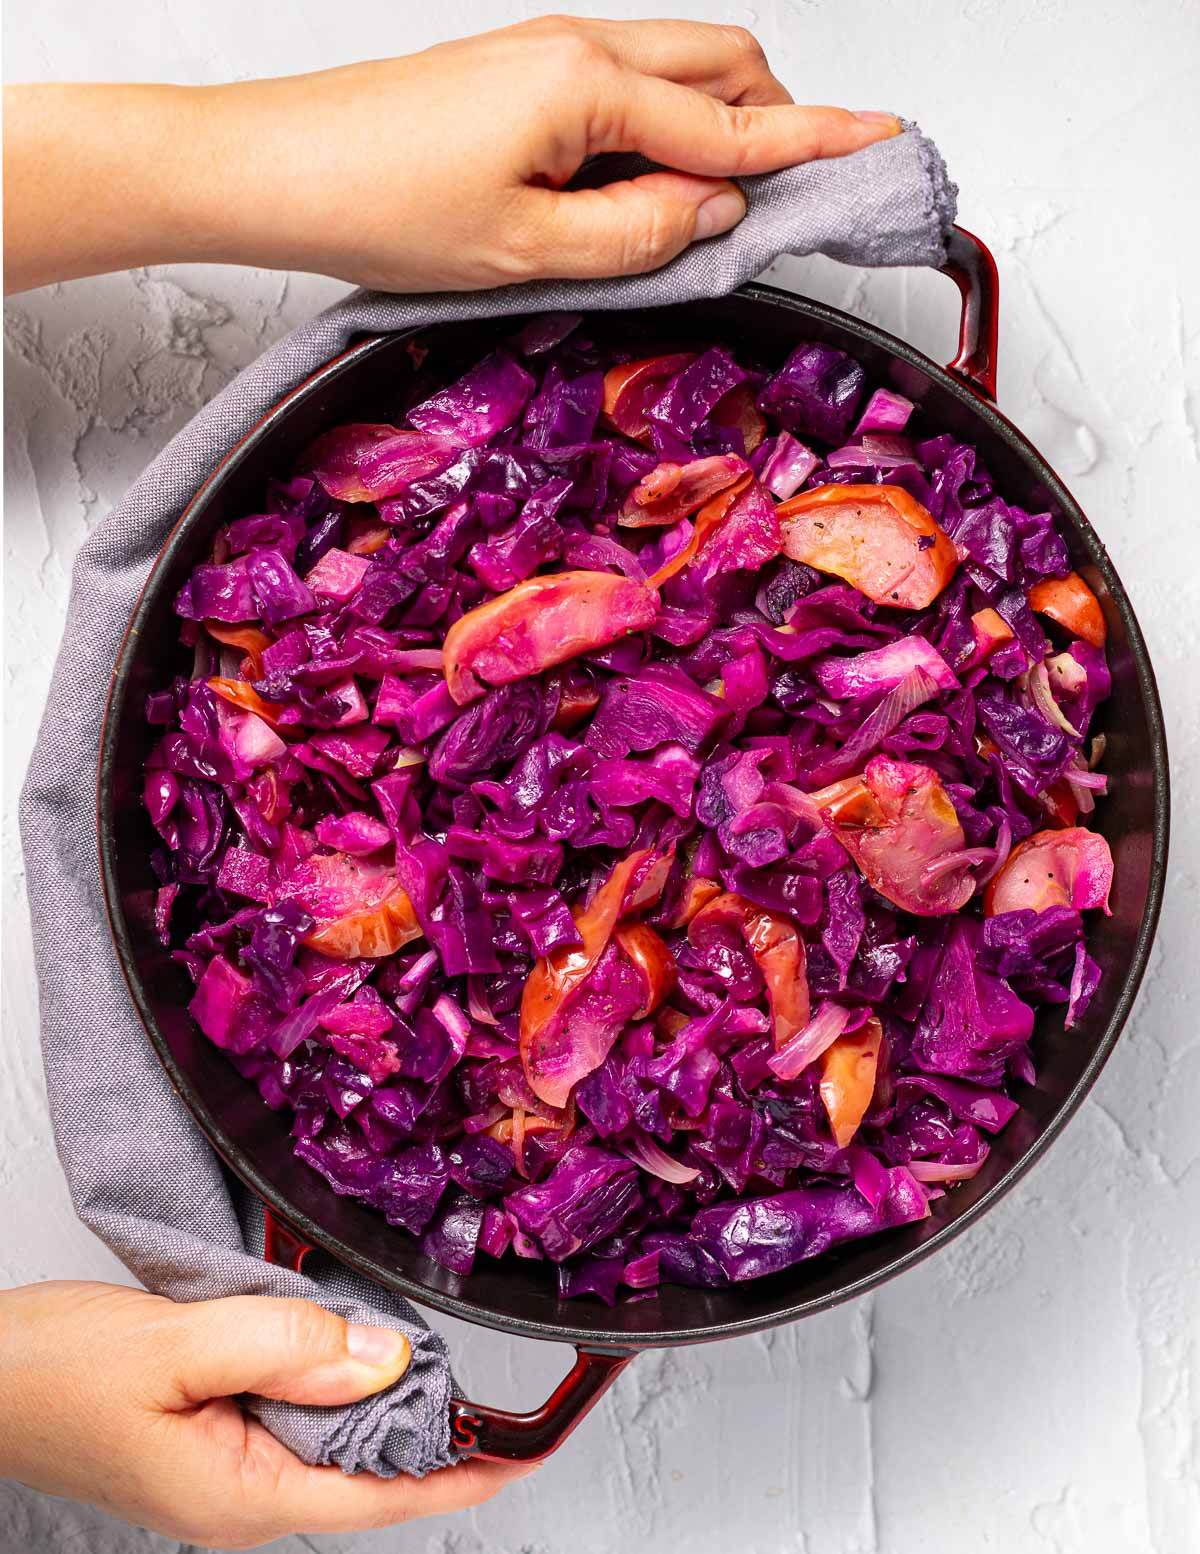 baked red cabbage and apples in a staub skillet